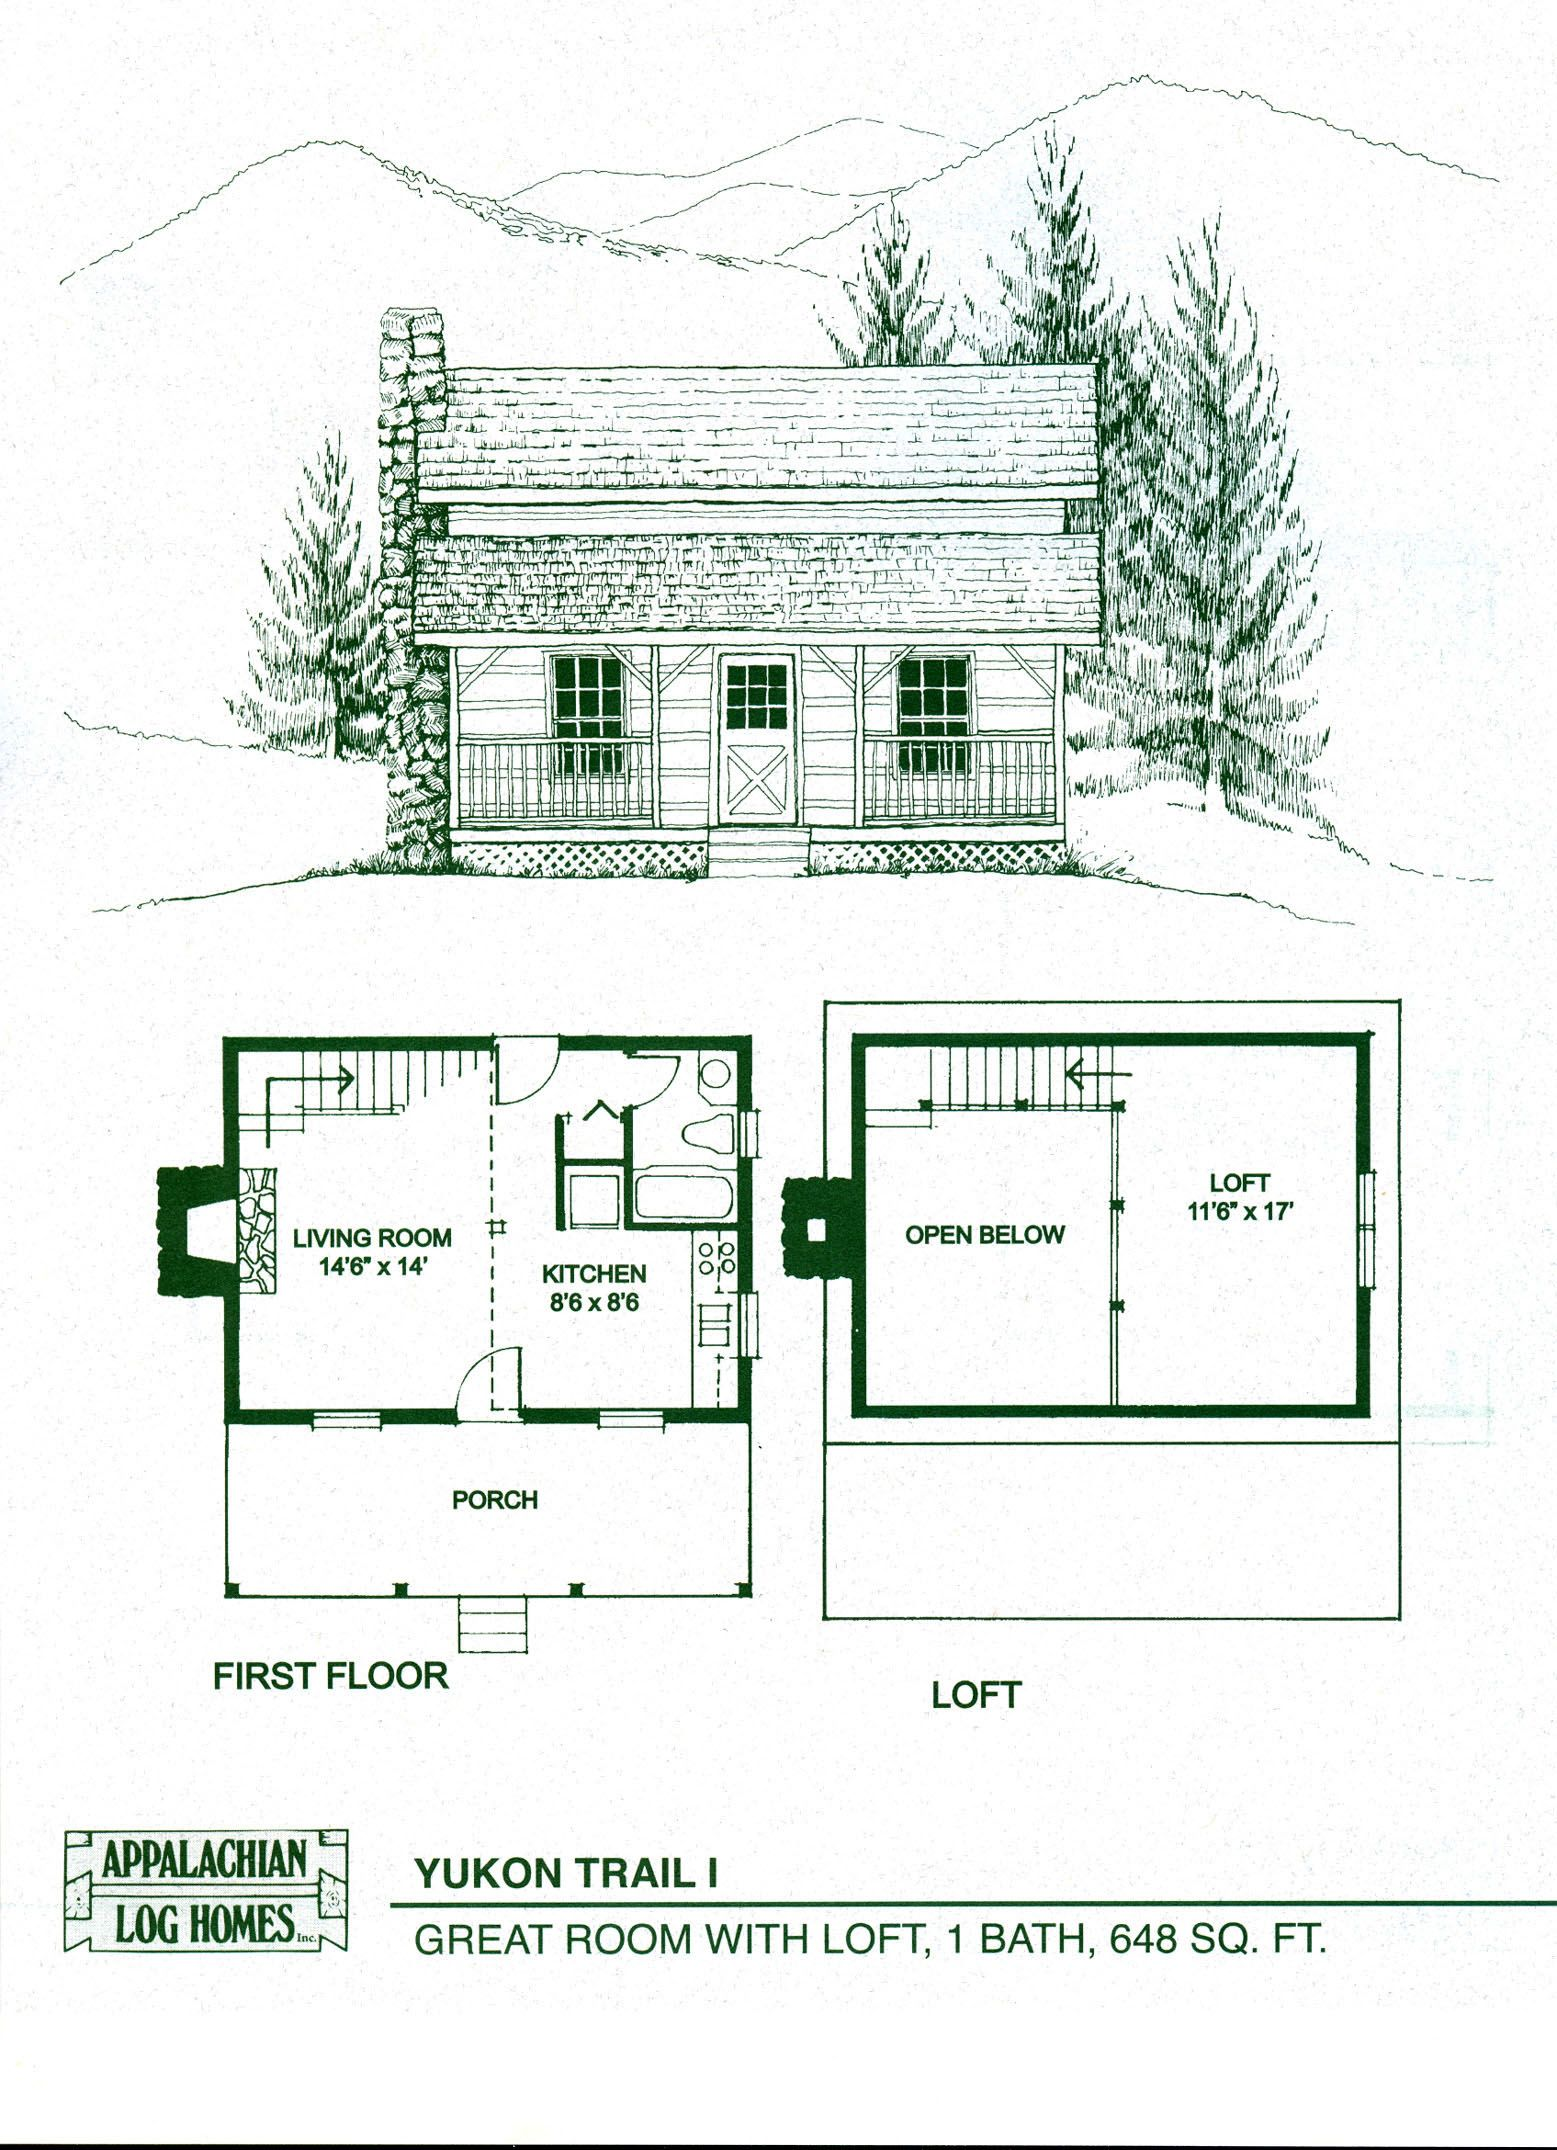 Remarkable Log Home Floor Plans Log Cabin Kits Appalachian Log Homes Largest Home Design Picture Inspirations Pitcheantrous